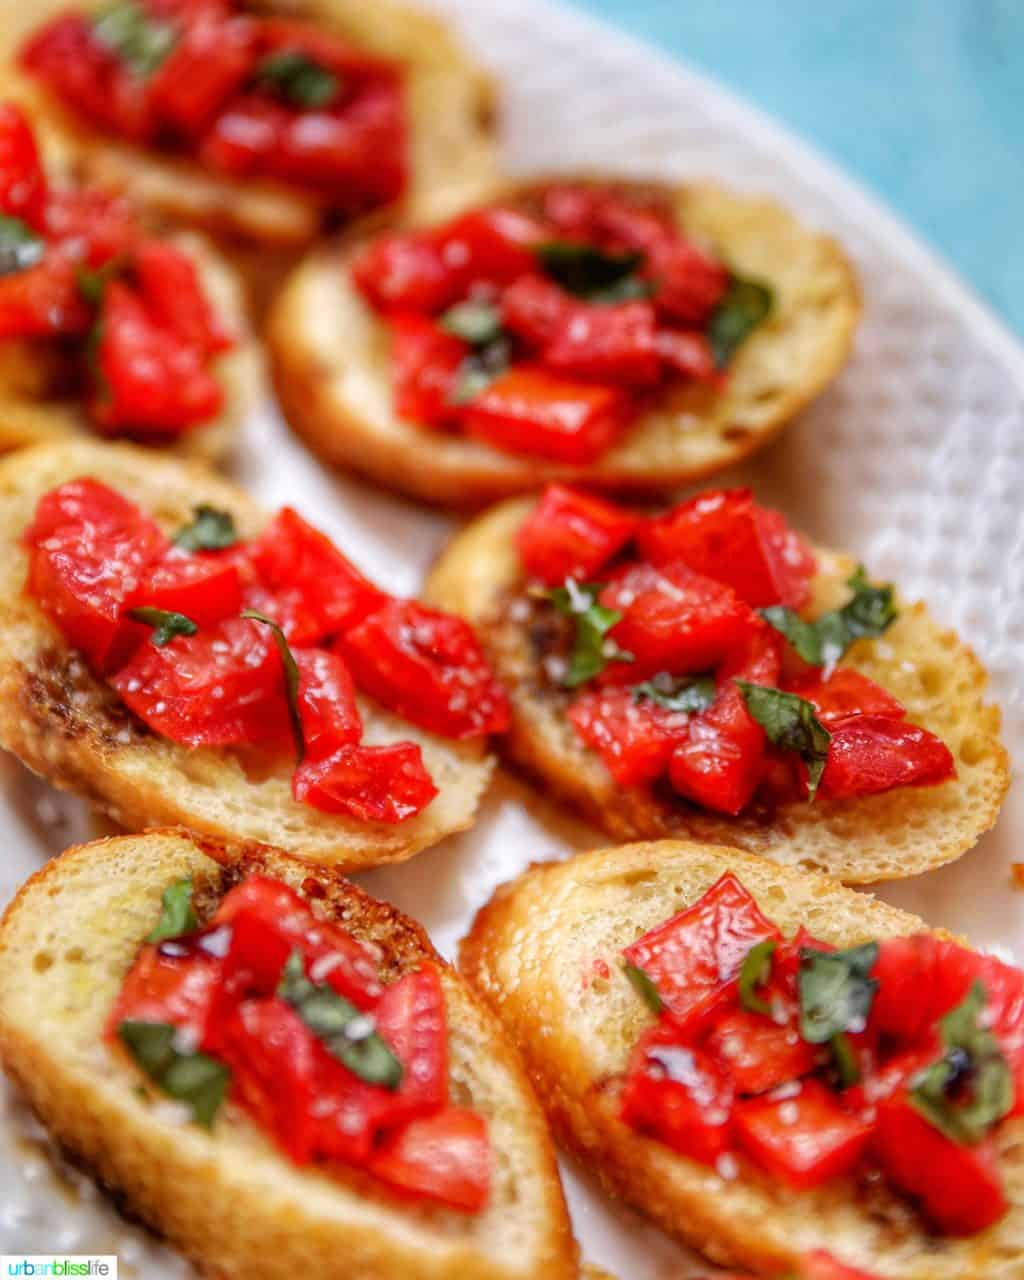 full plate of tomato bruschetta with balsamic vinegar